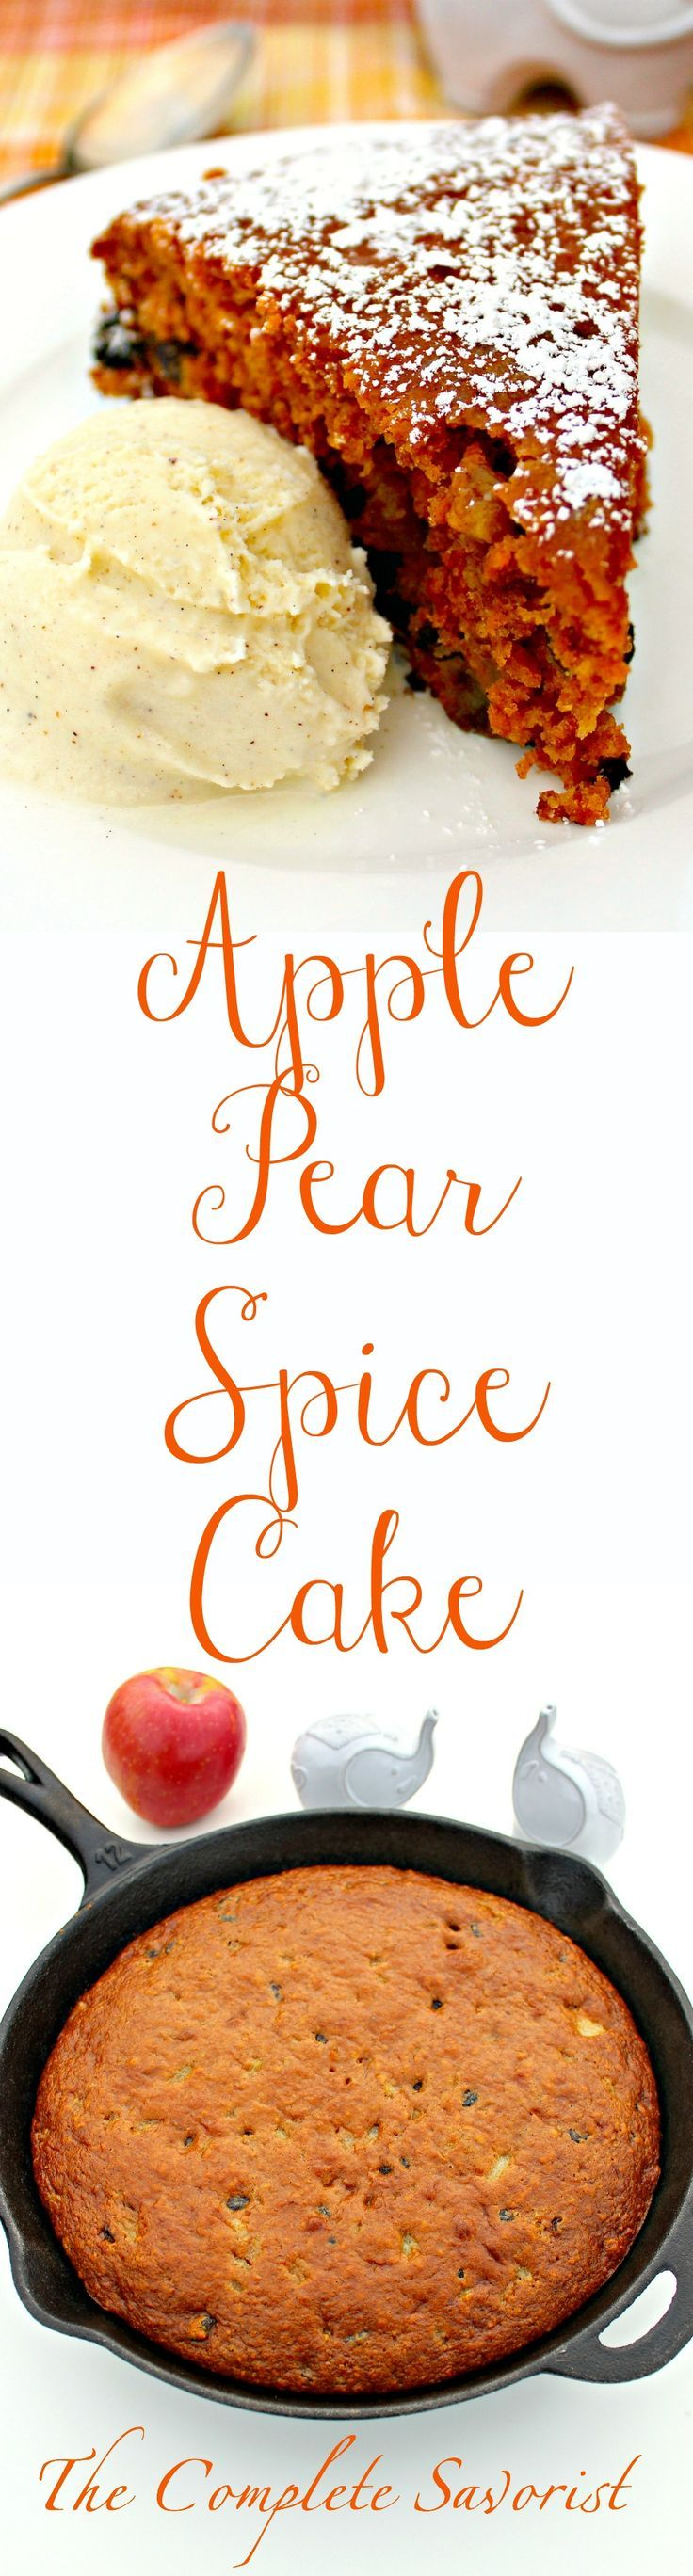 Apple Pear Spice Cake ~Warm spices, raisins, applesauce, and diced pears make a delicious autumn cake ~ The Complete Savorist #CampChef @campchefmfr